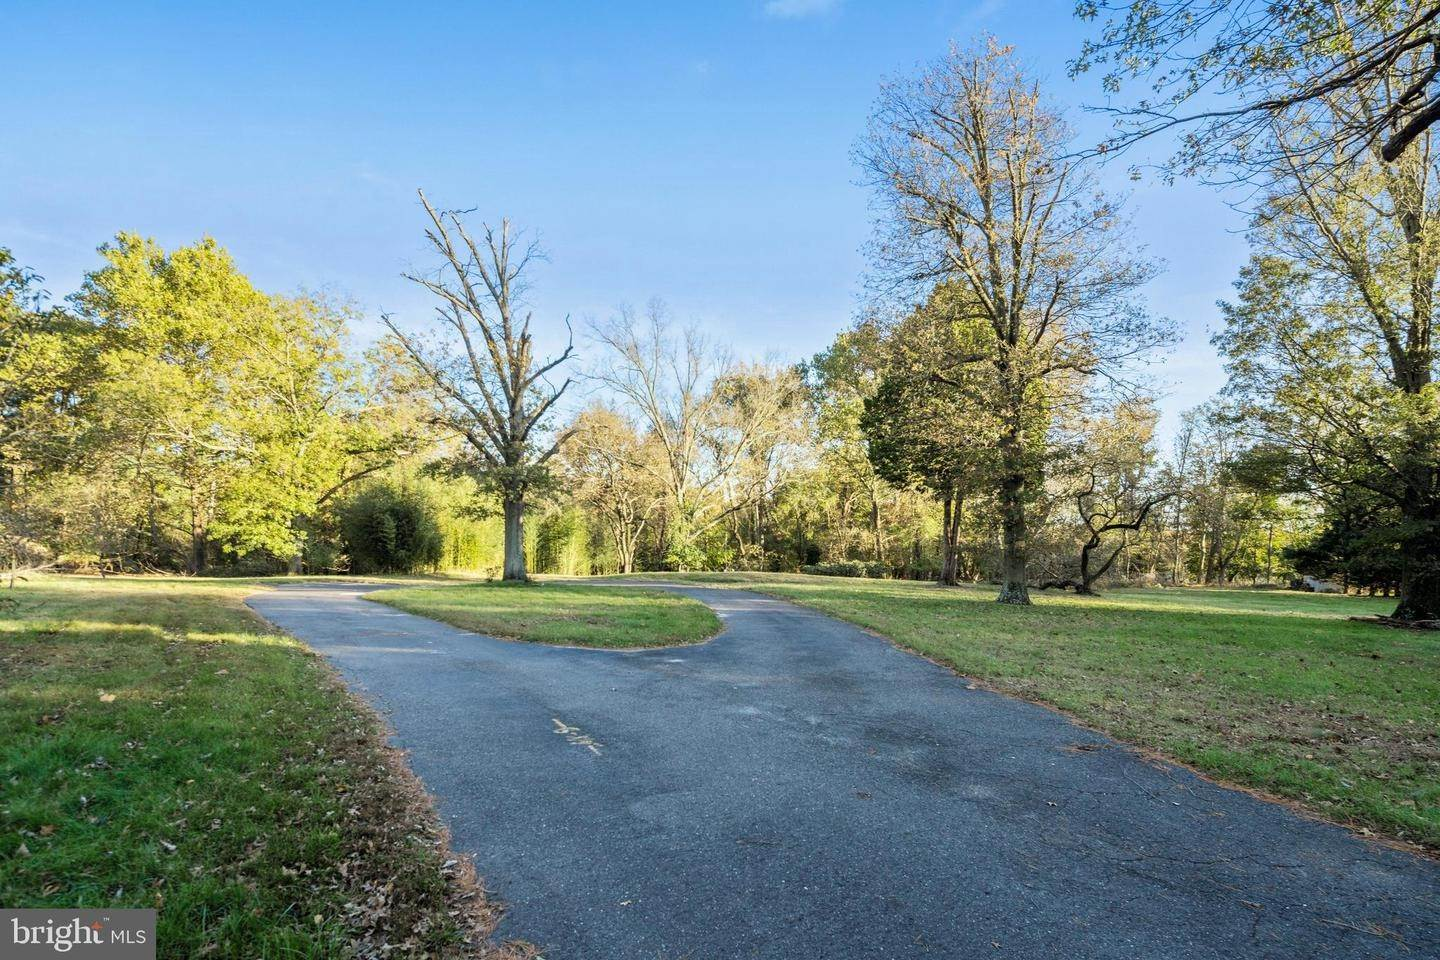 6. Land for Sale at 10 LANE OF ACRES Haddonfield, New Jersey 08033 United States